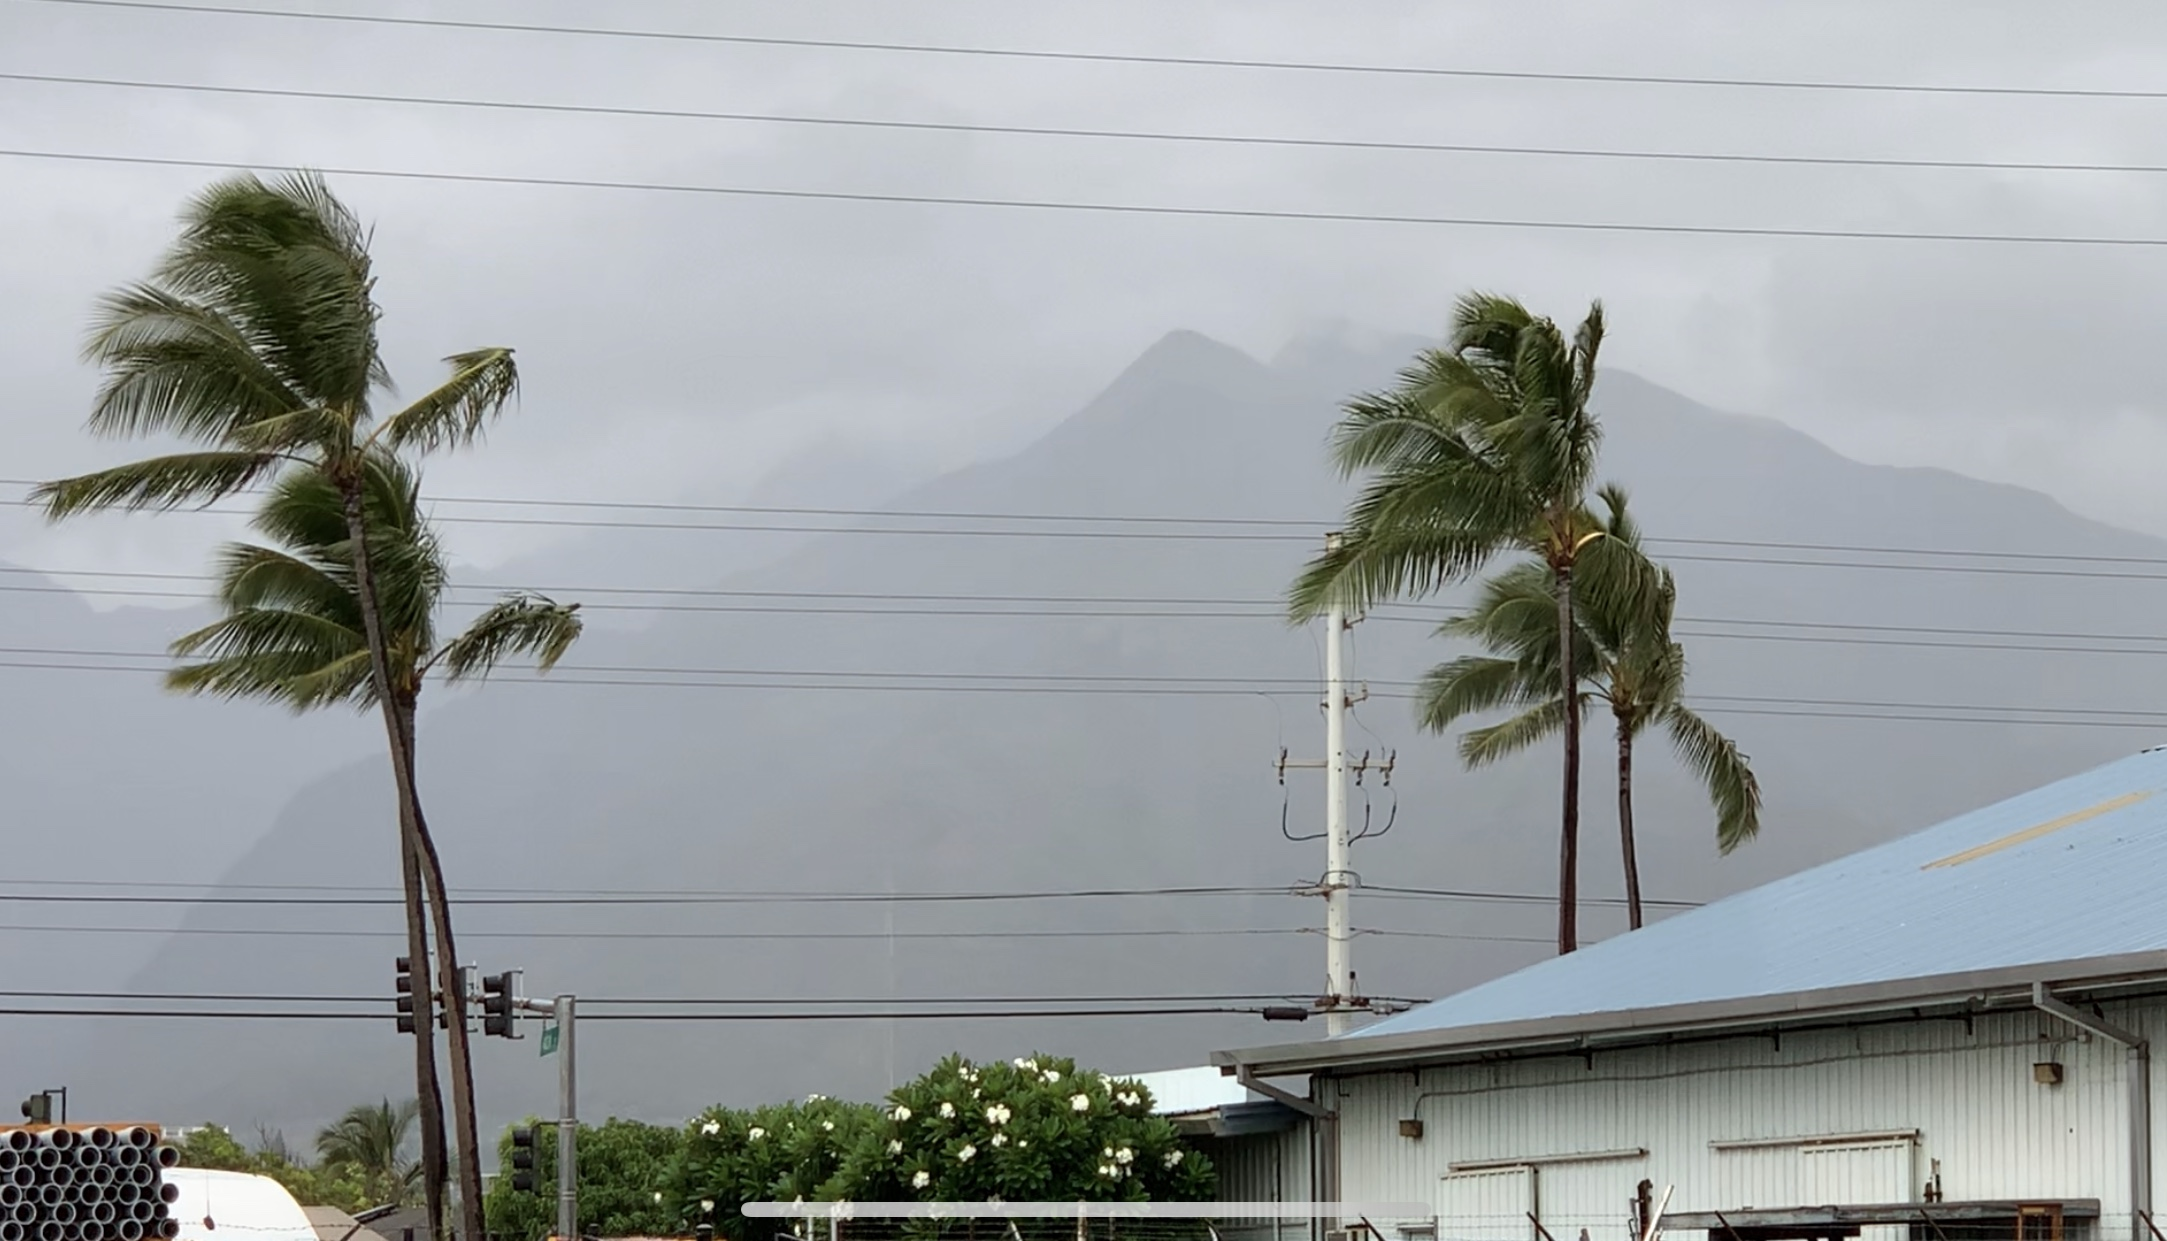 County Update: Flossie Weakening, Potential for Surf, Rain for Maui